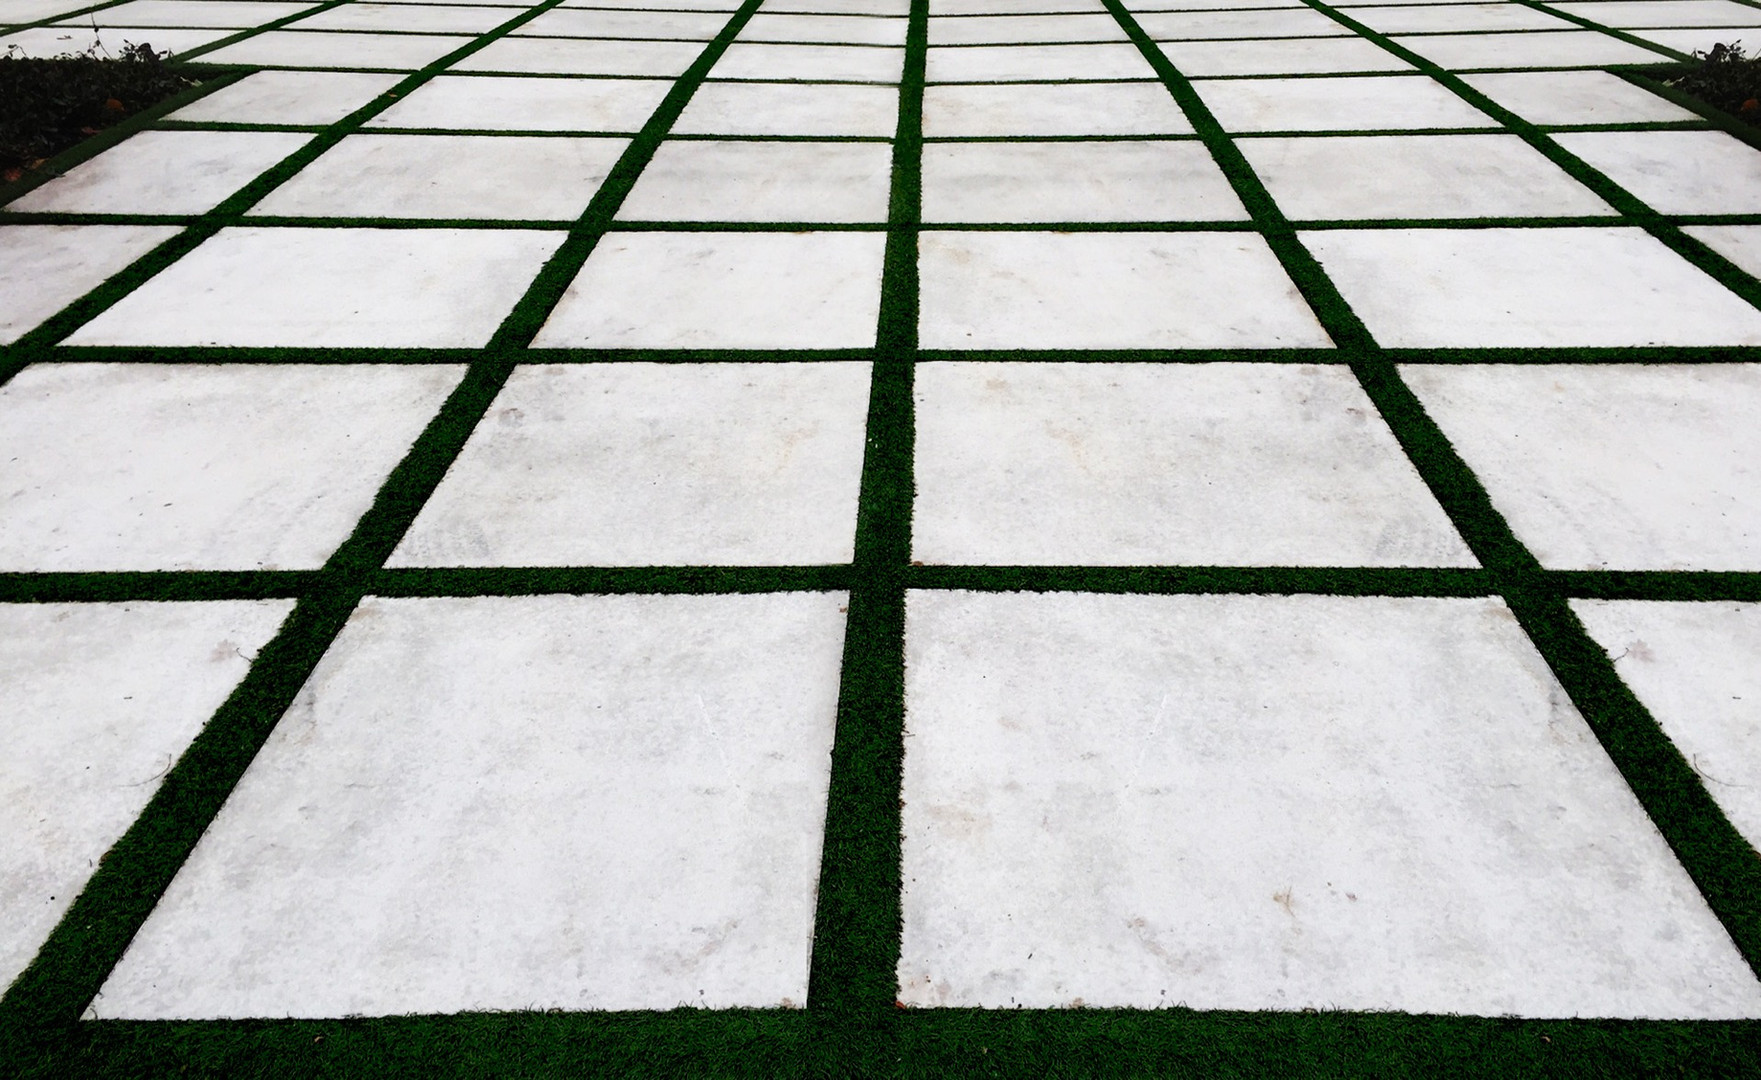 Concrete stepping slabs with artifical grass